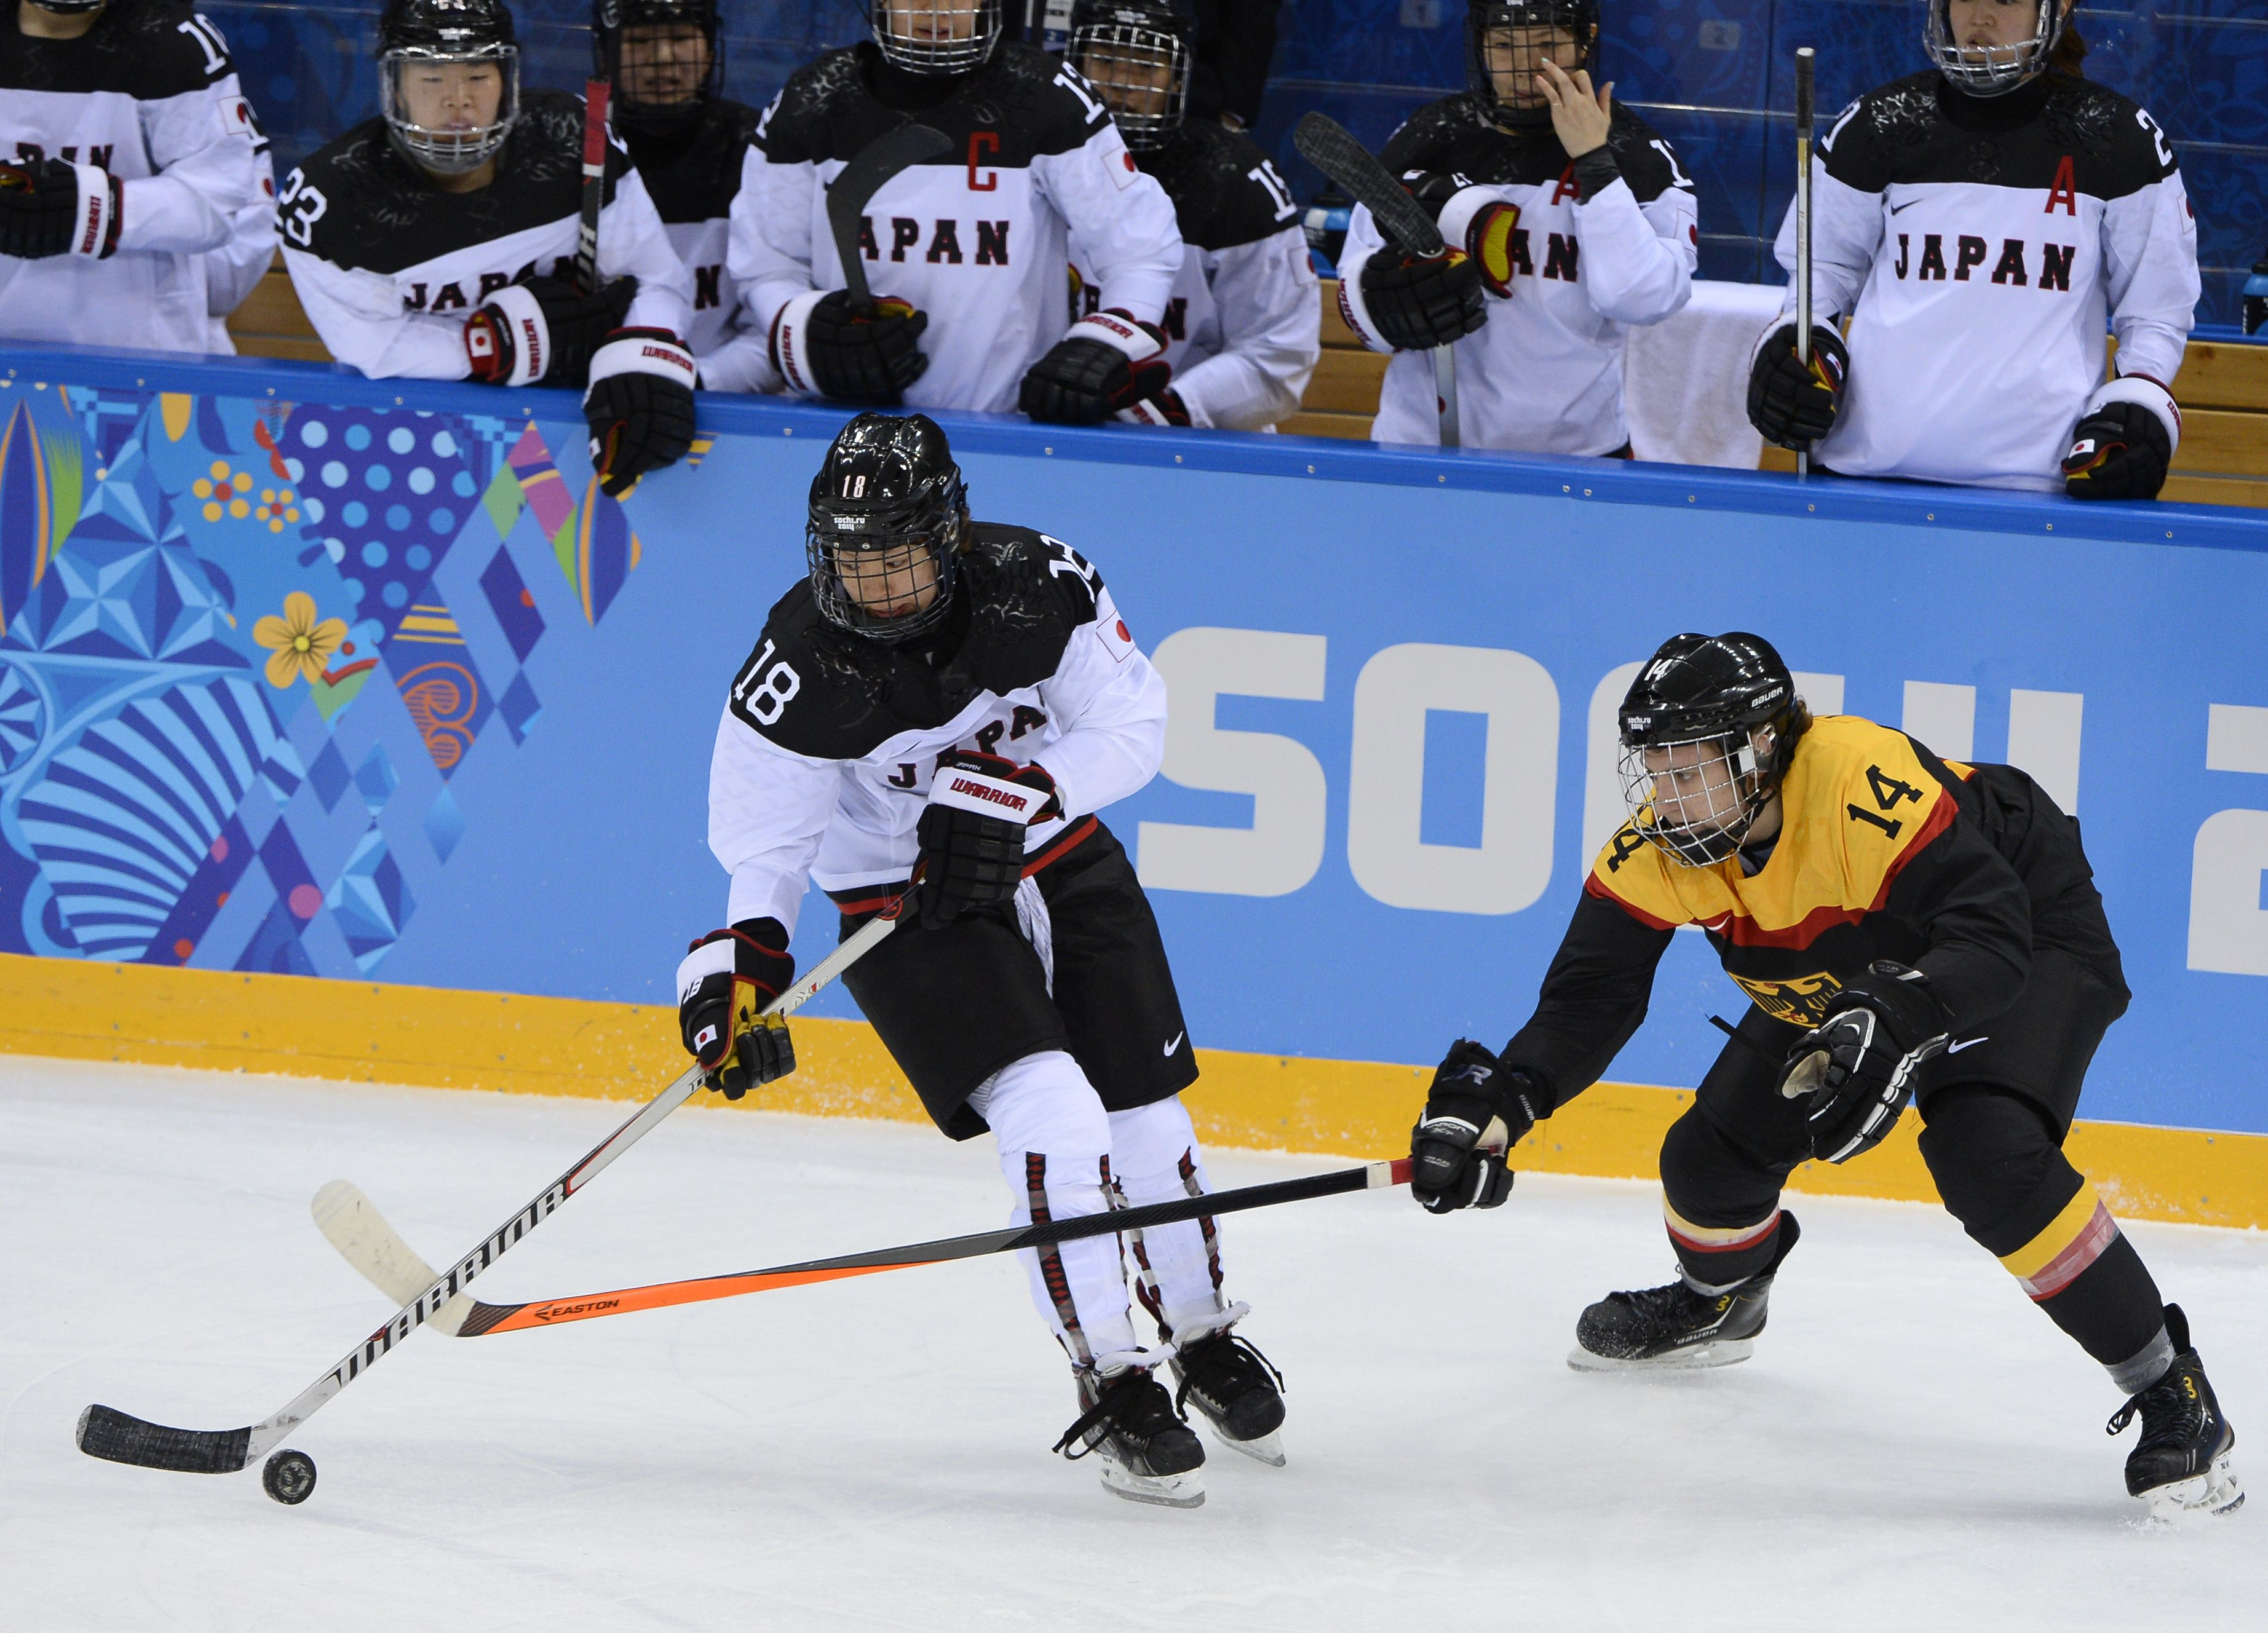 7 women's hockey preliminary round - boring winter olympic events